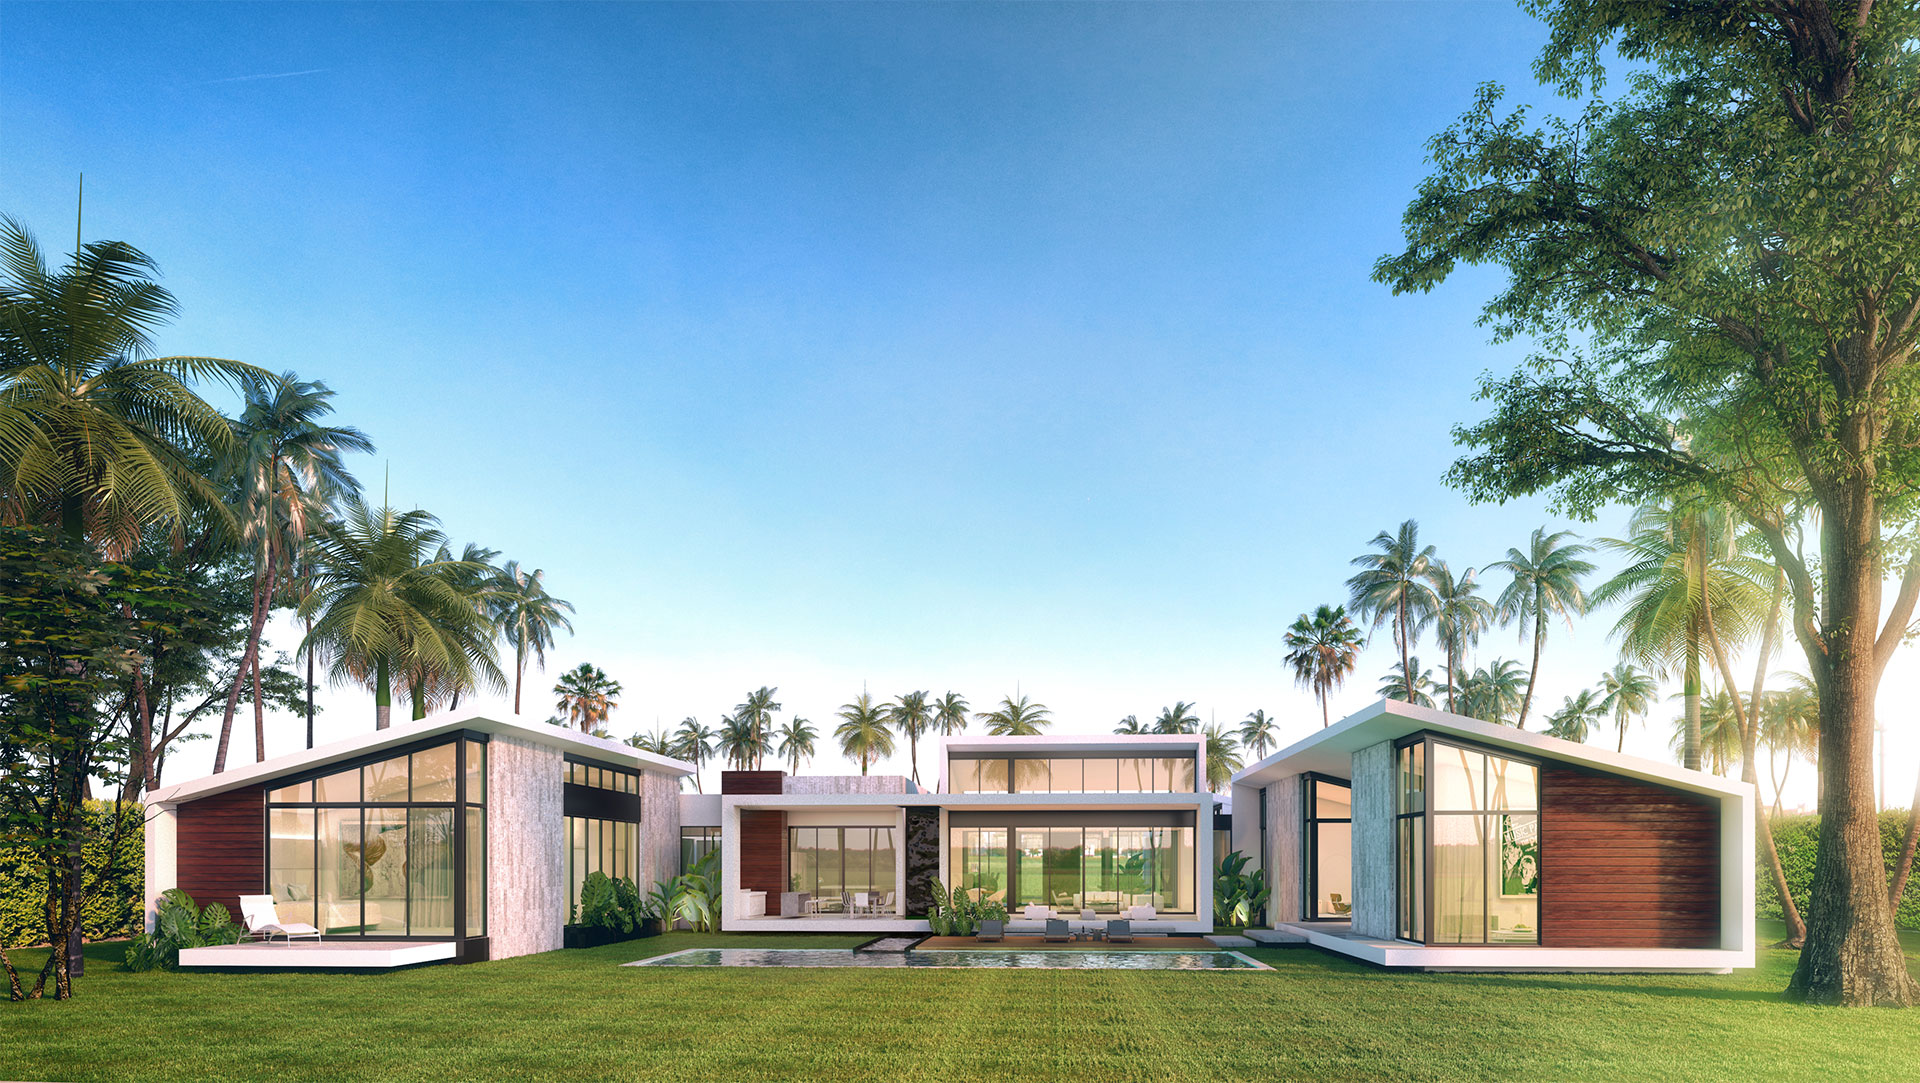 Front view of the Architecture project at Lake Ridge, Weston